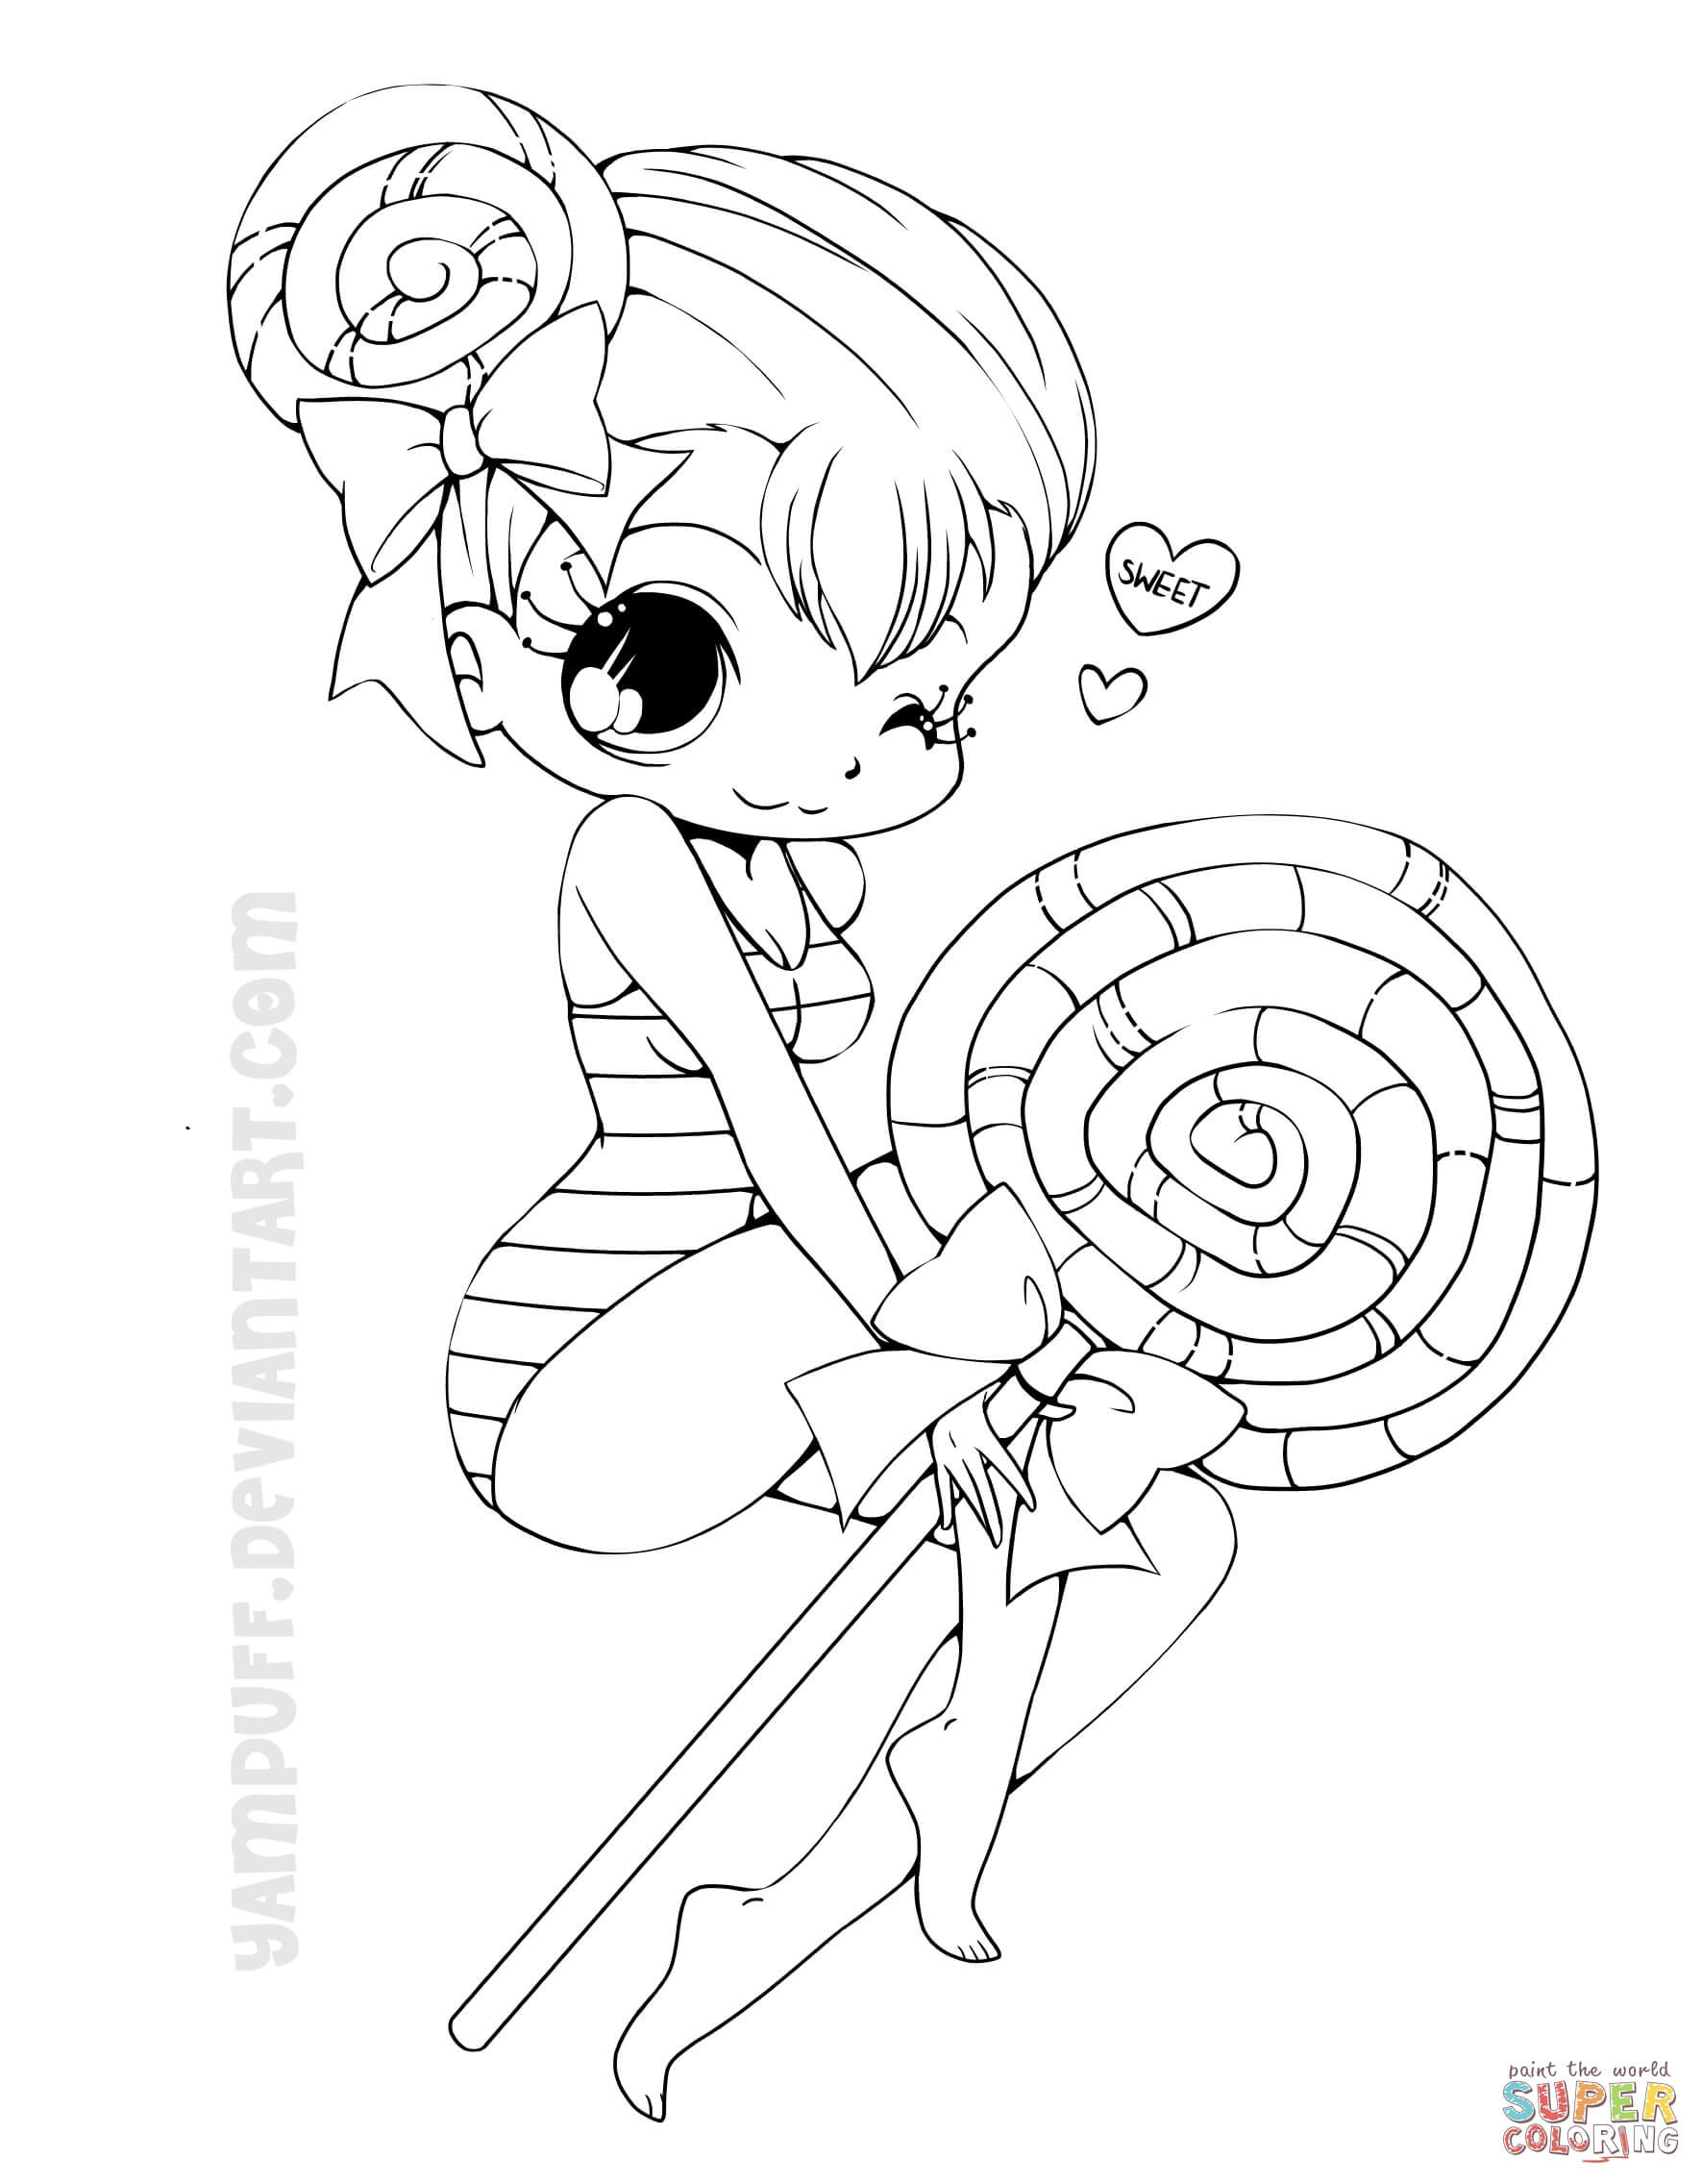 Chibi Girl Coloring Pages  Chibi Lollipop Girl coloring page